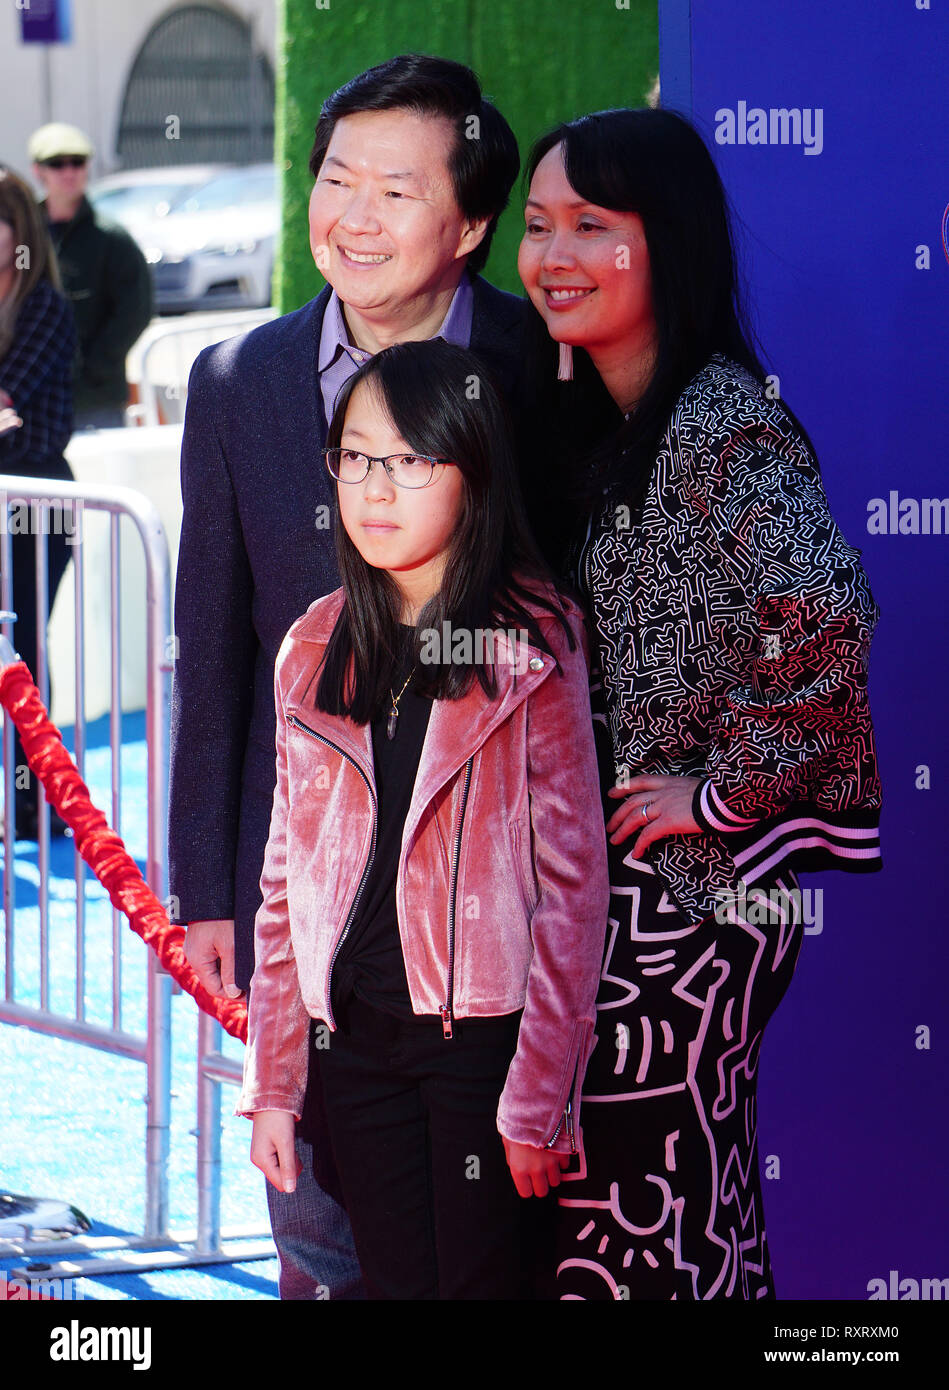 Ken Jeong And Family High Resolution Stock Photography And Images Alamy